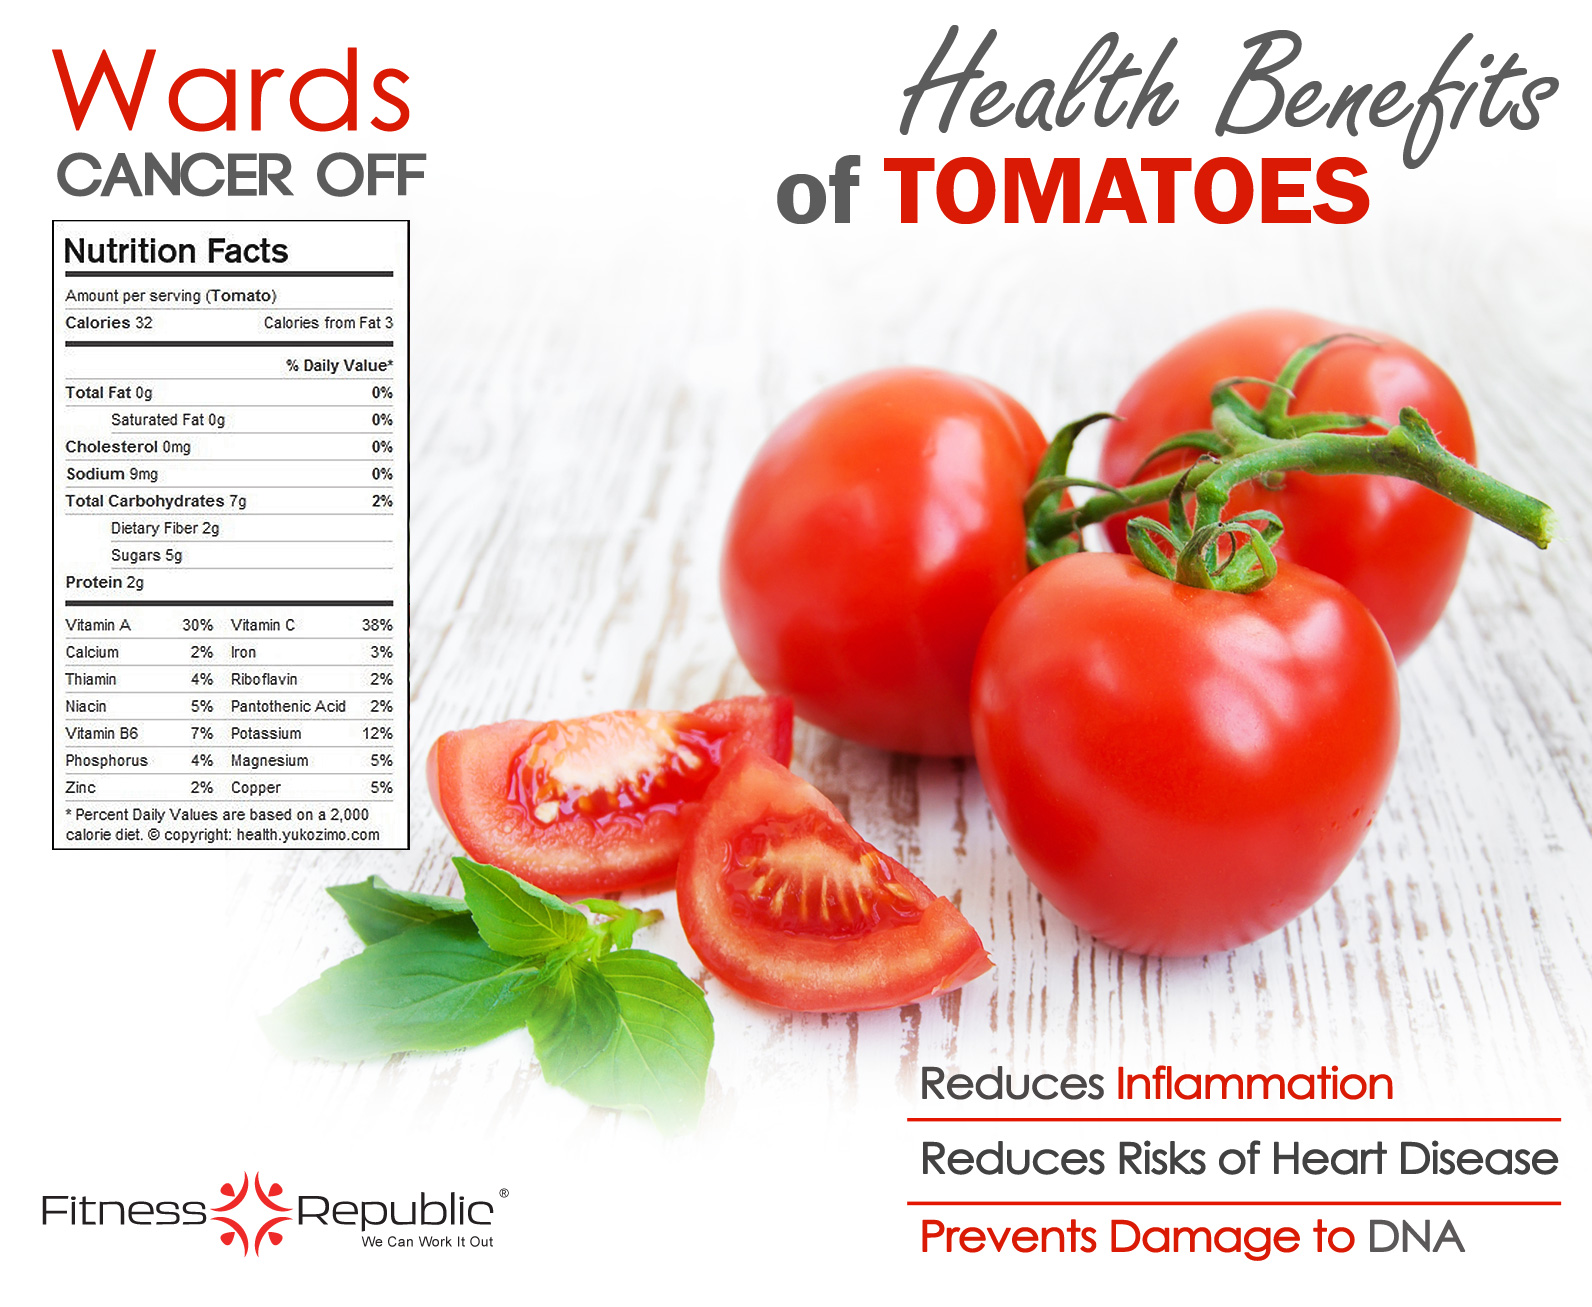 health-benefits-of-tomatoes_5256411cb8745